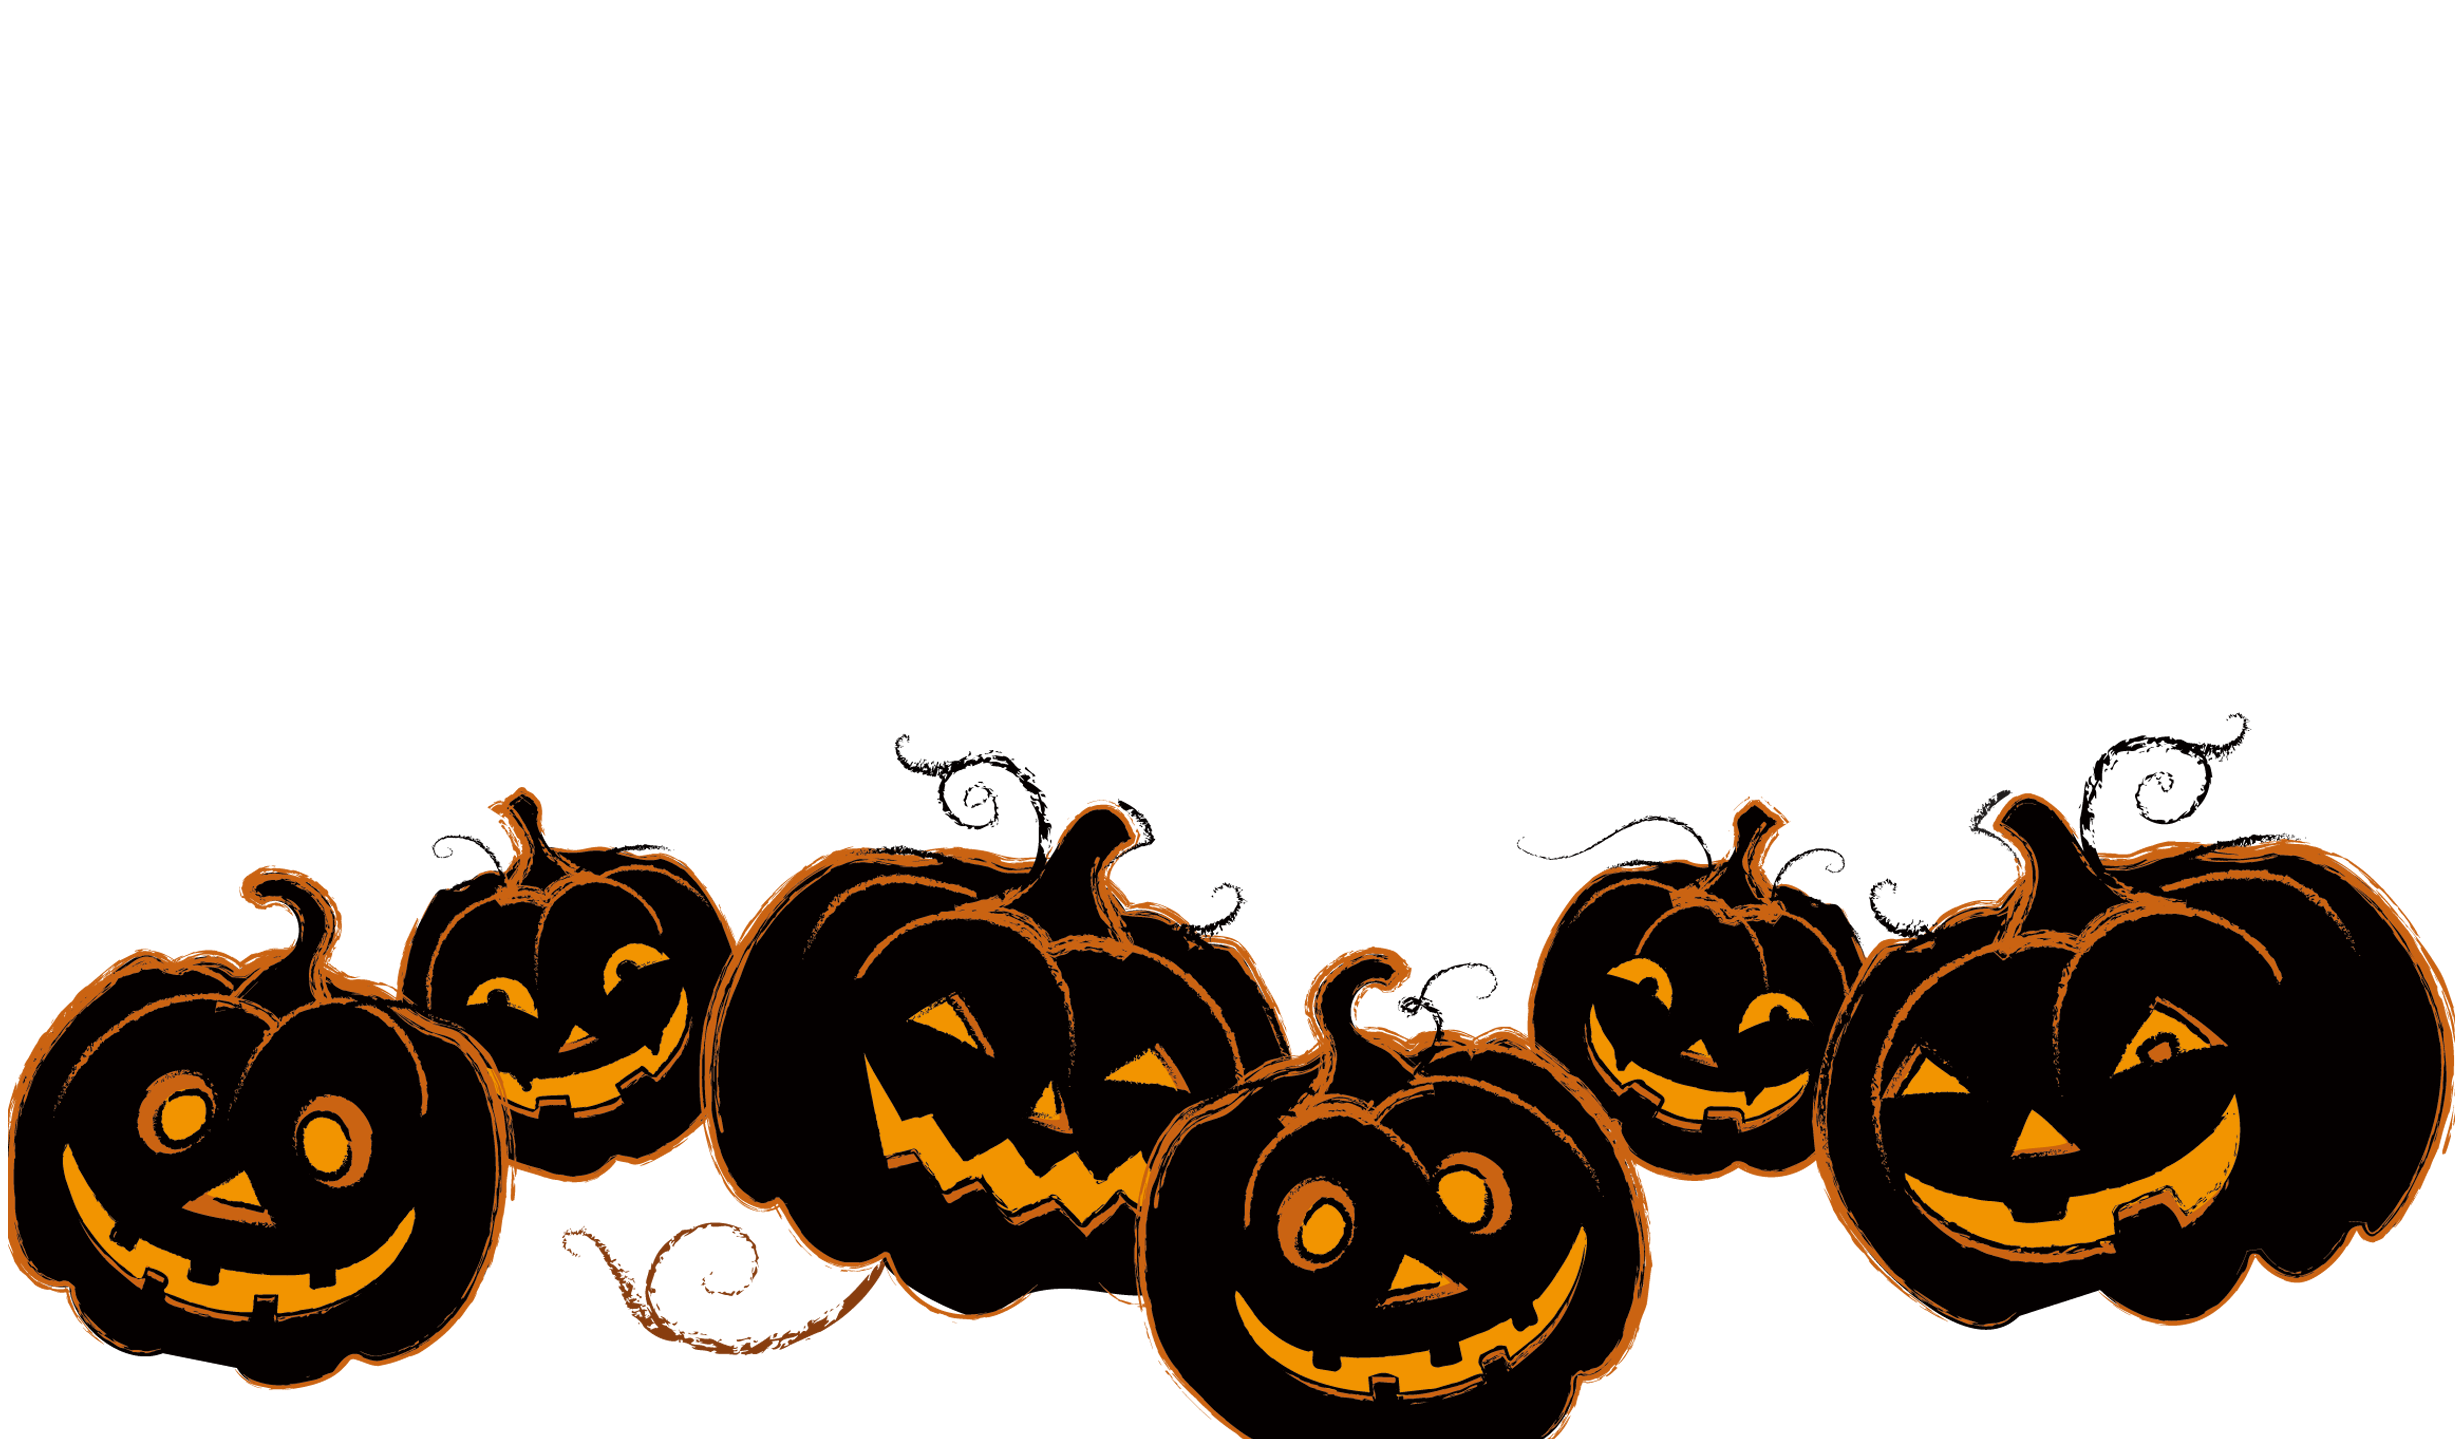 Pumpkin font clipart jpg New Hampshire Pumpkin Festival Halloween All Saints Day - pumpkin ... jpg